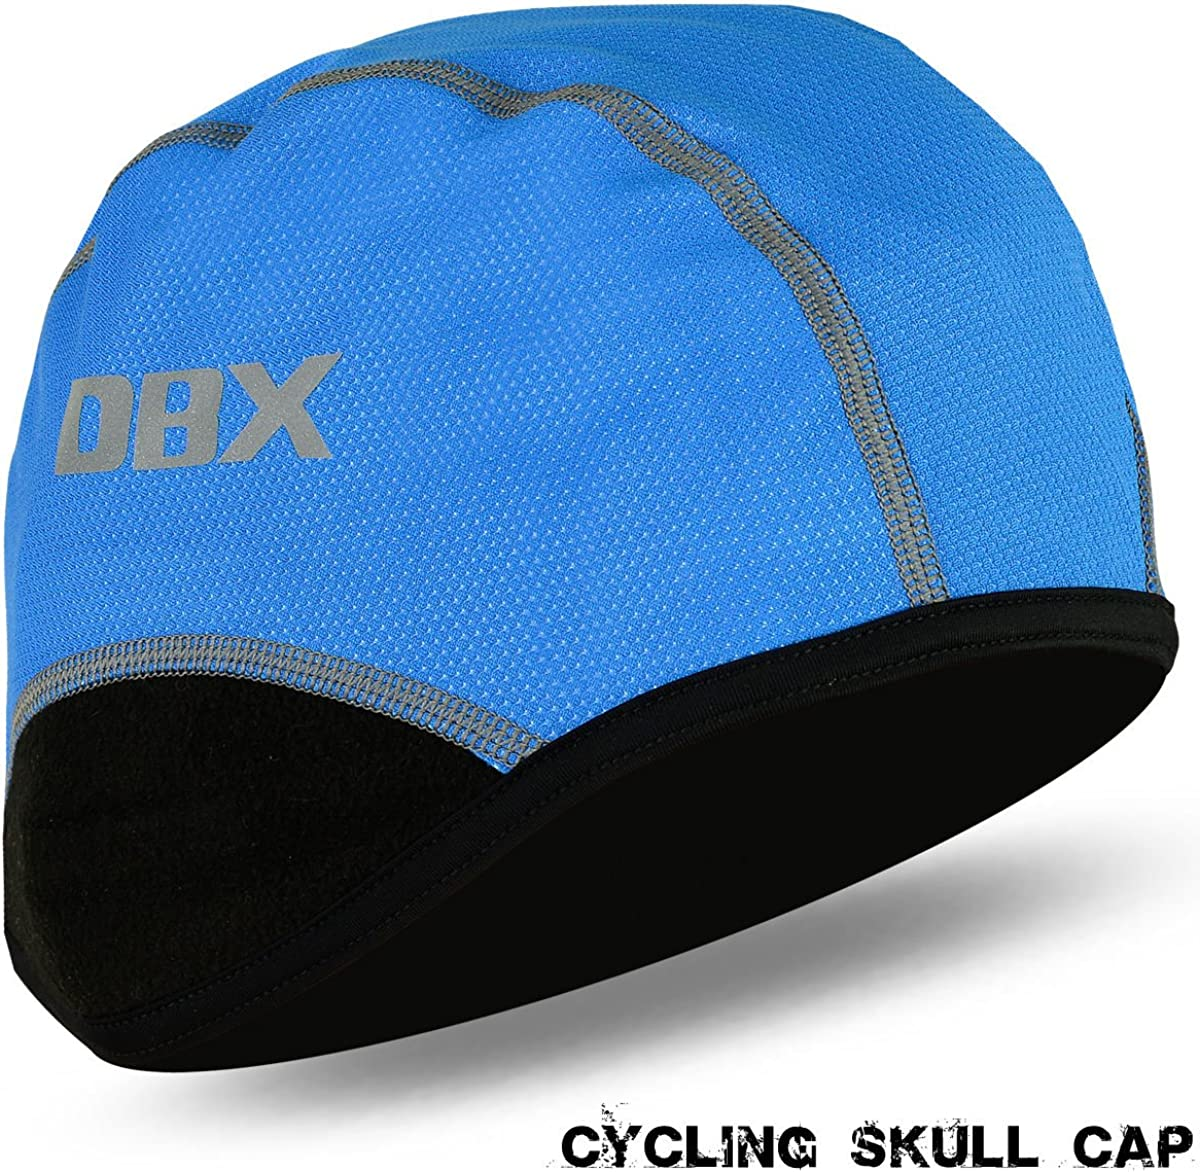 Cycling Walking and Mountain Climbing Cycling Skull Cap Bike Motorbike Under Helmet Hat Thermal Windstopper Hat Rowing Suitable for Running